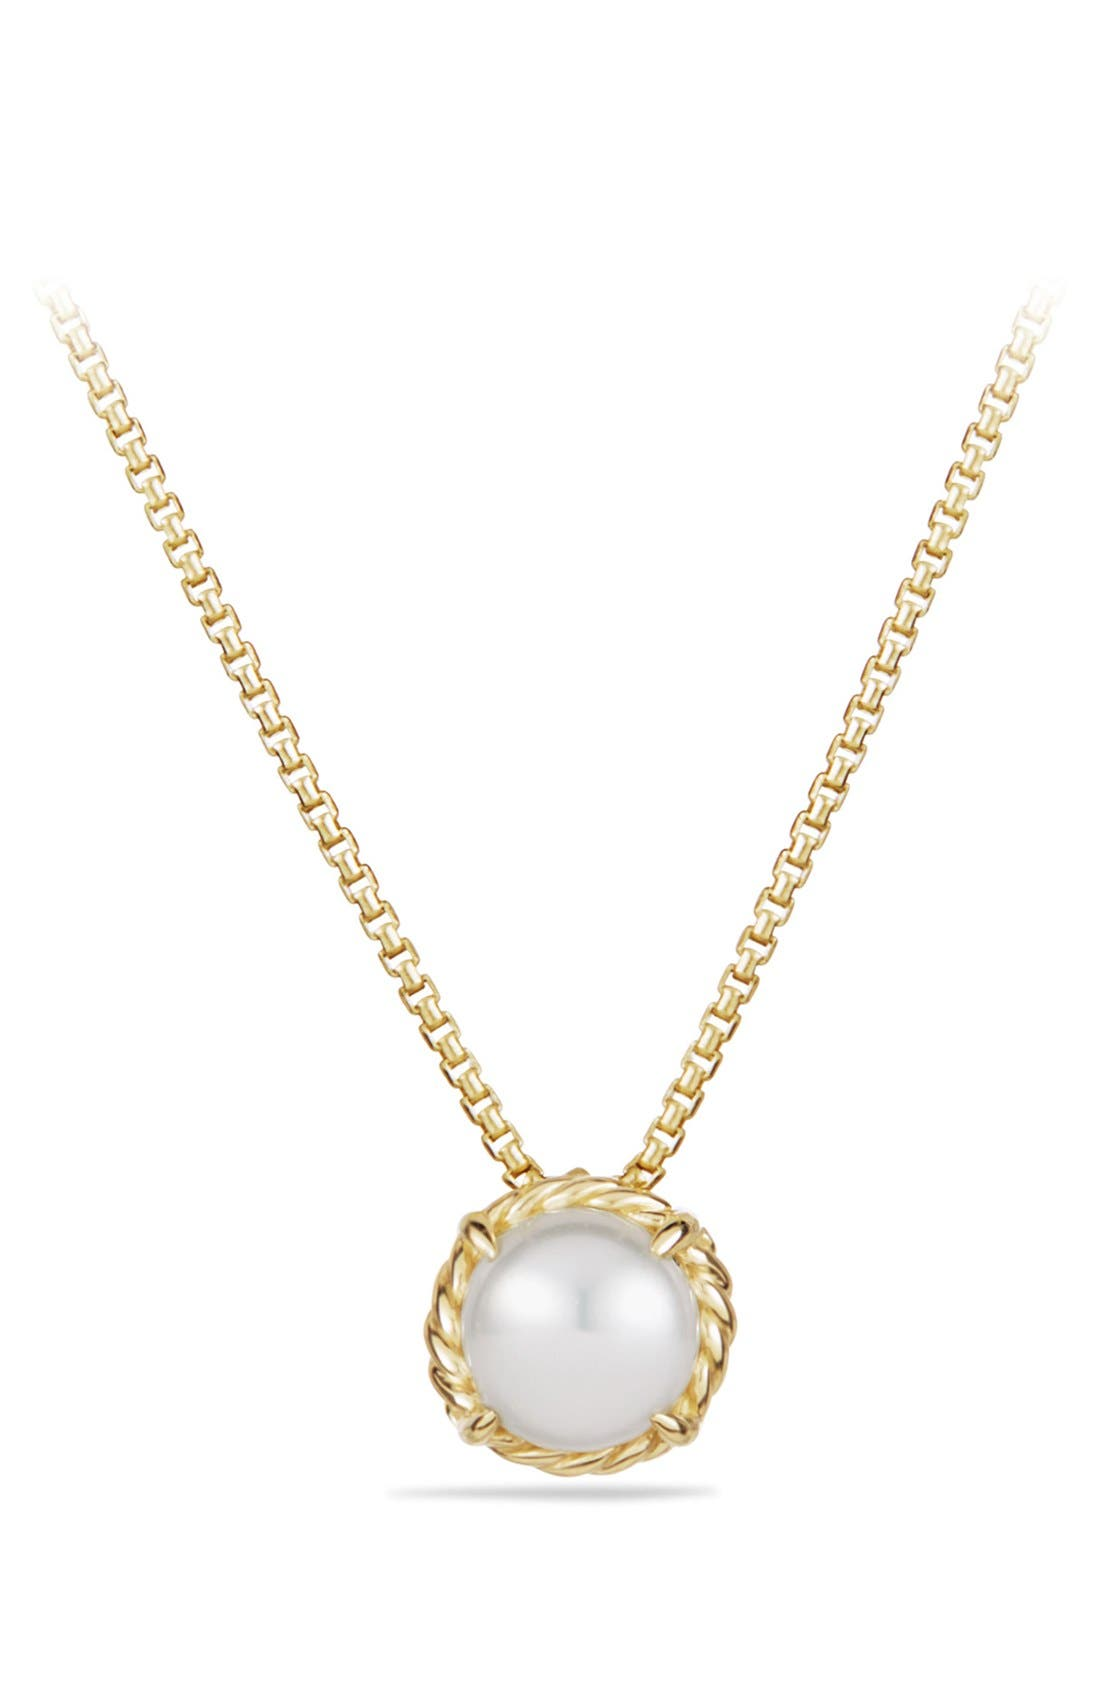 'Châtelaine' Pendant Necklace with Freshwater Pearl in 18K Gold,                         Main,                         color, Pearl